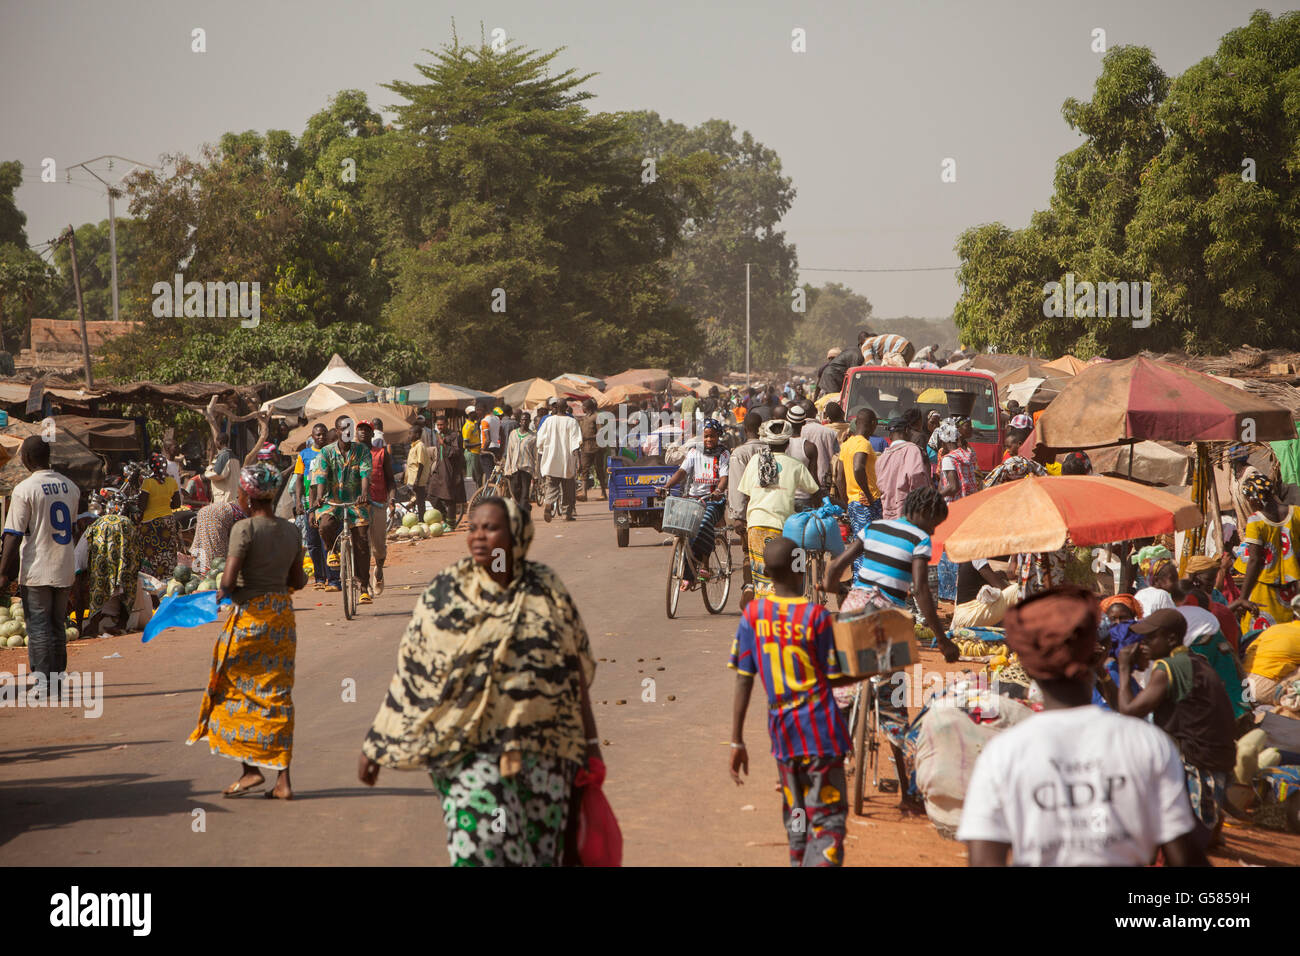 People shop at a busy market in Banwa Province, Burkina Faso. - Stock Image